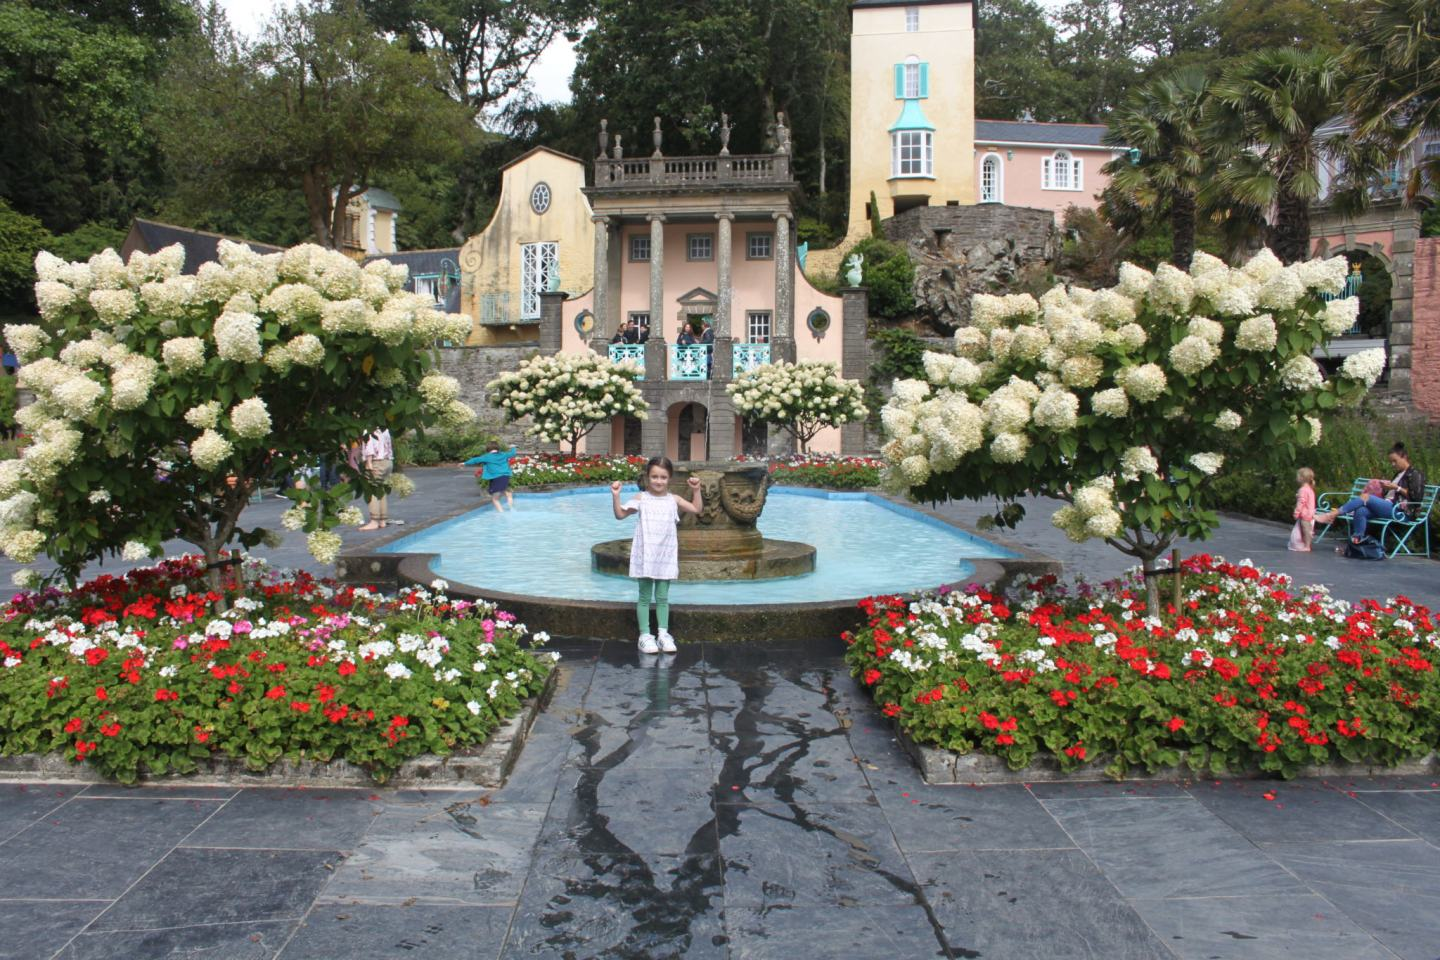 The Village of Portmeirion